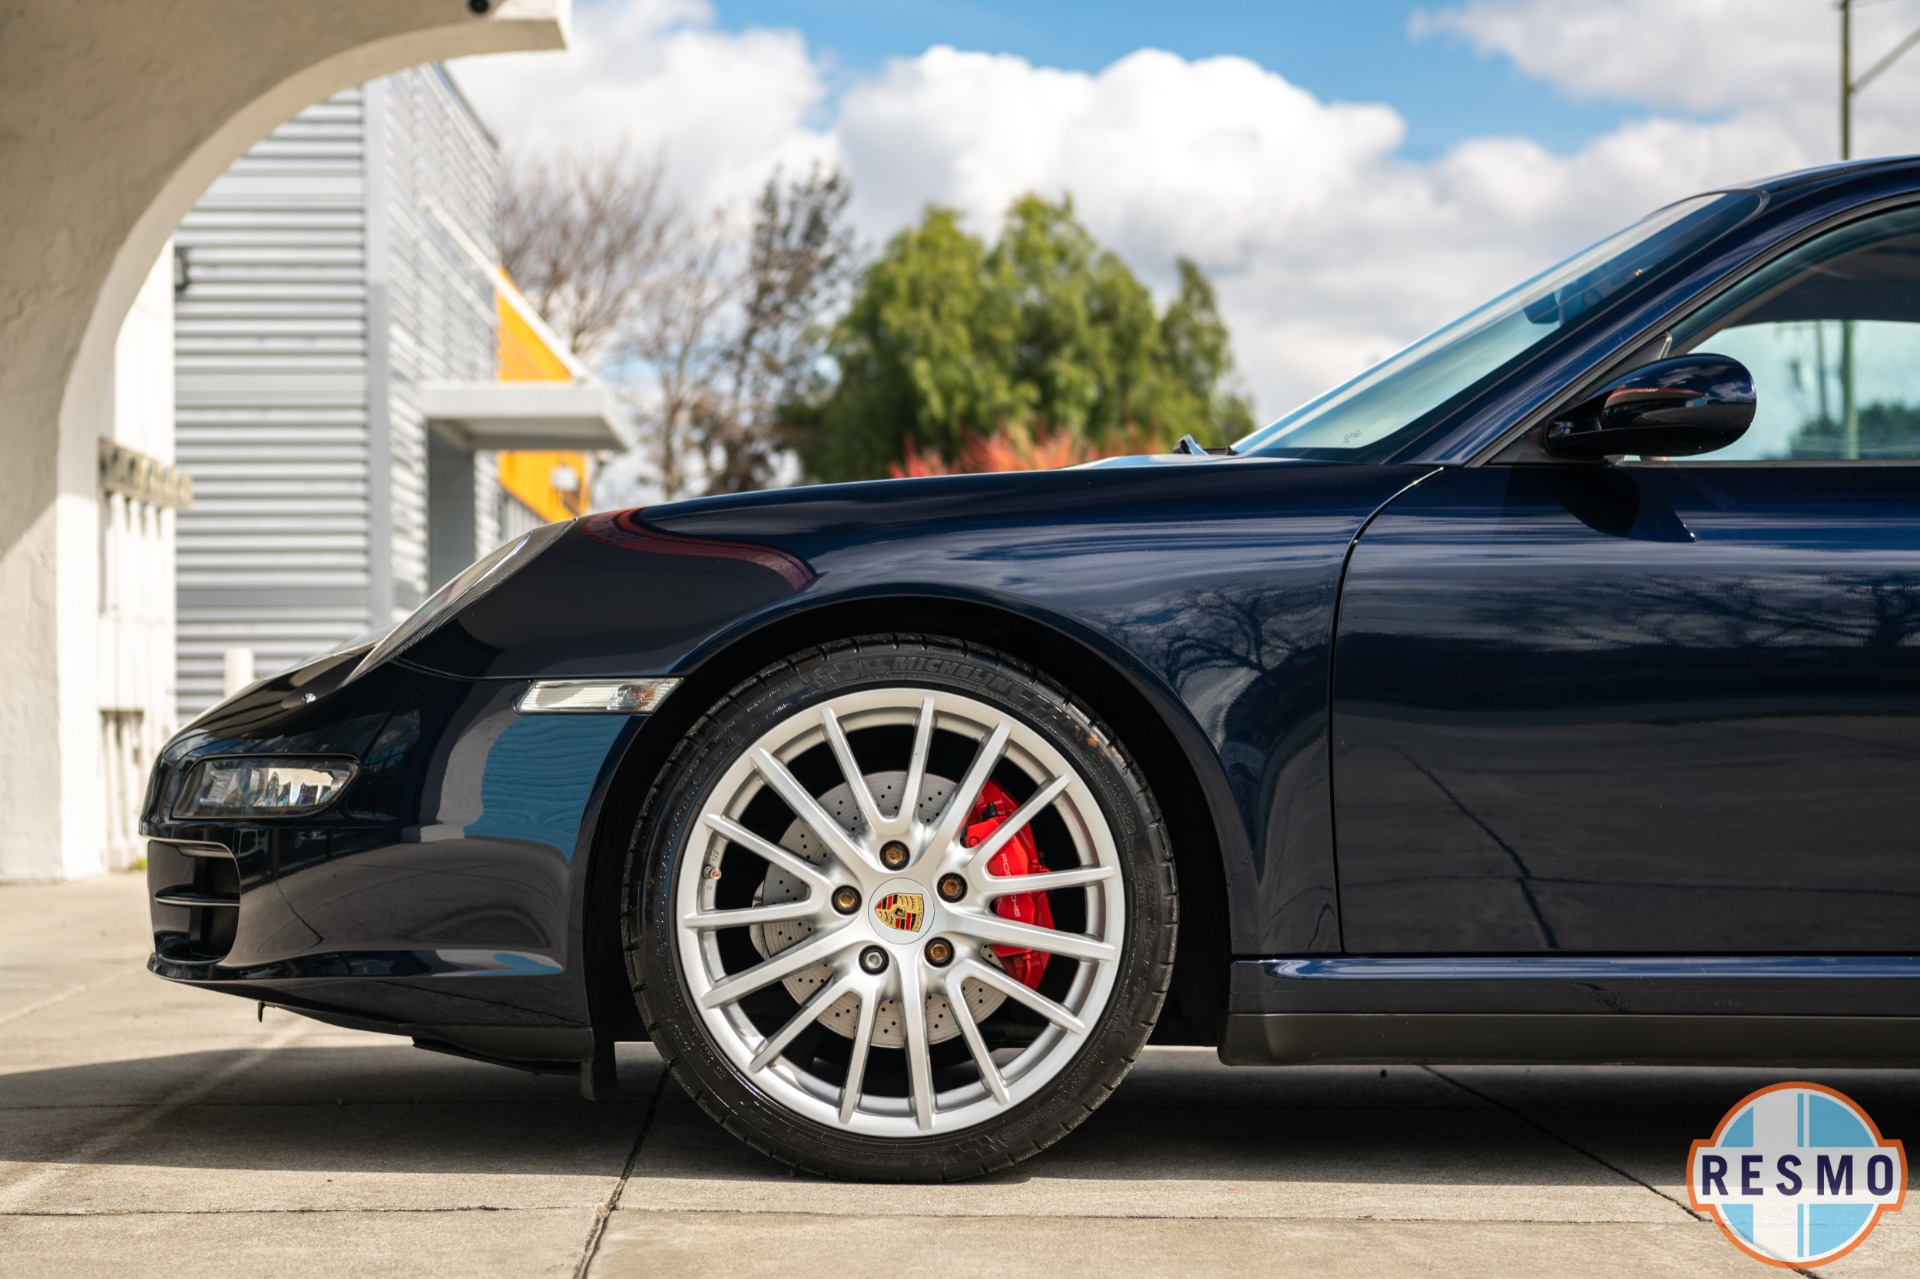 Used 2008 Porsche 911 Carrera 4S Used 2008 Porsche 911 Carrera 4S for sale $41,999 at Response Motors in Mountain View CA 11